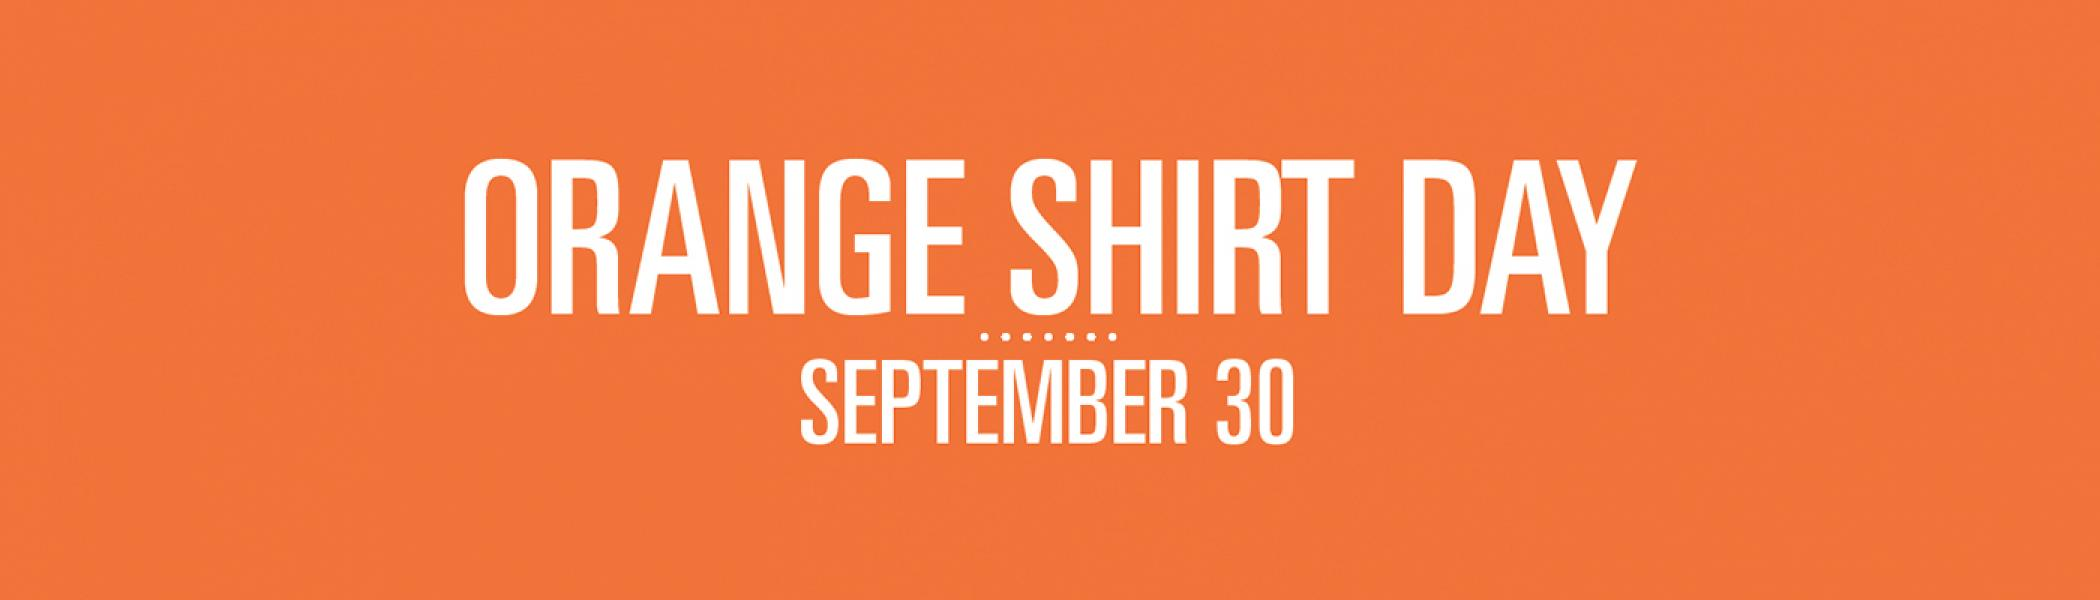 orange colour background with Orange Shirt Day, September 30th as text